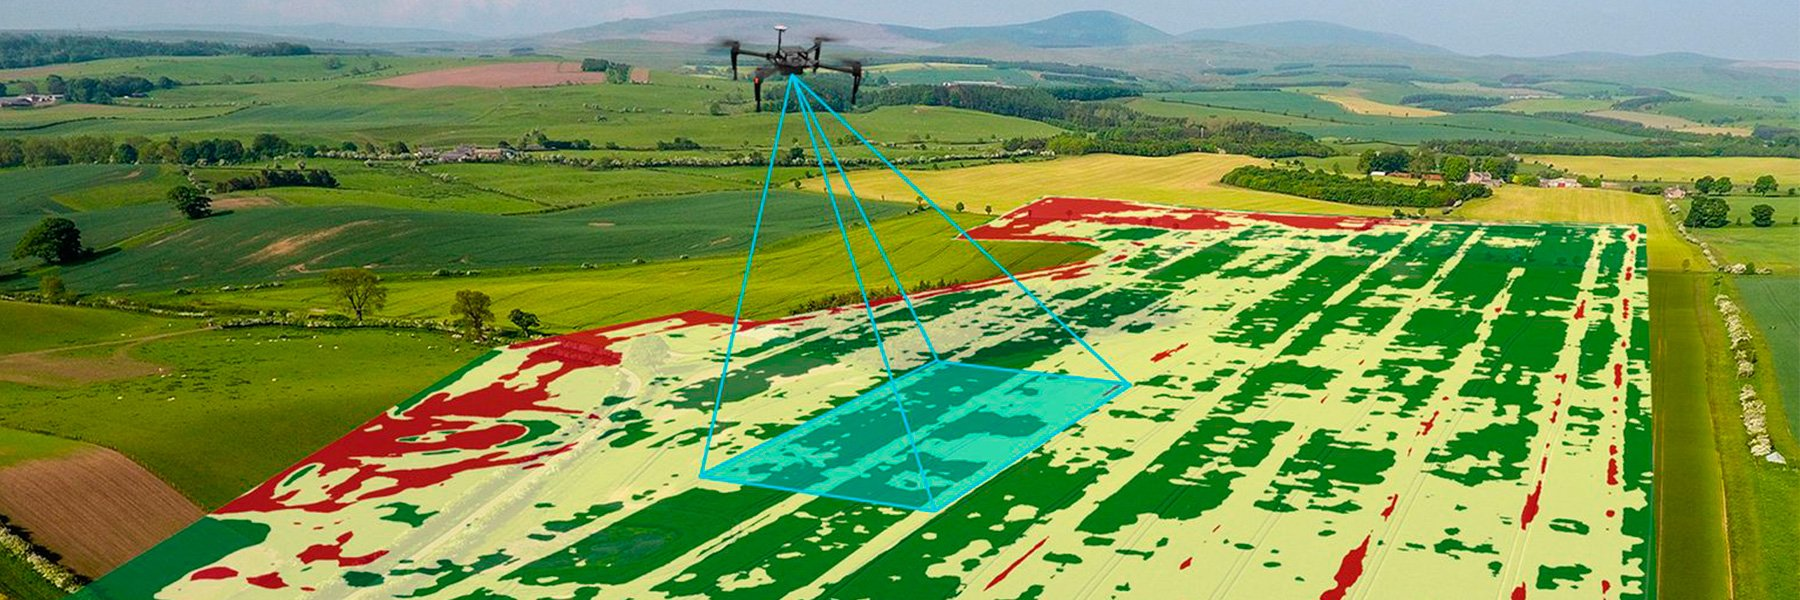 drones-na-agricultura